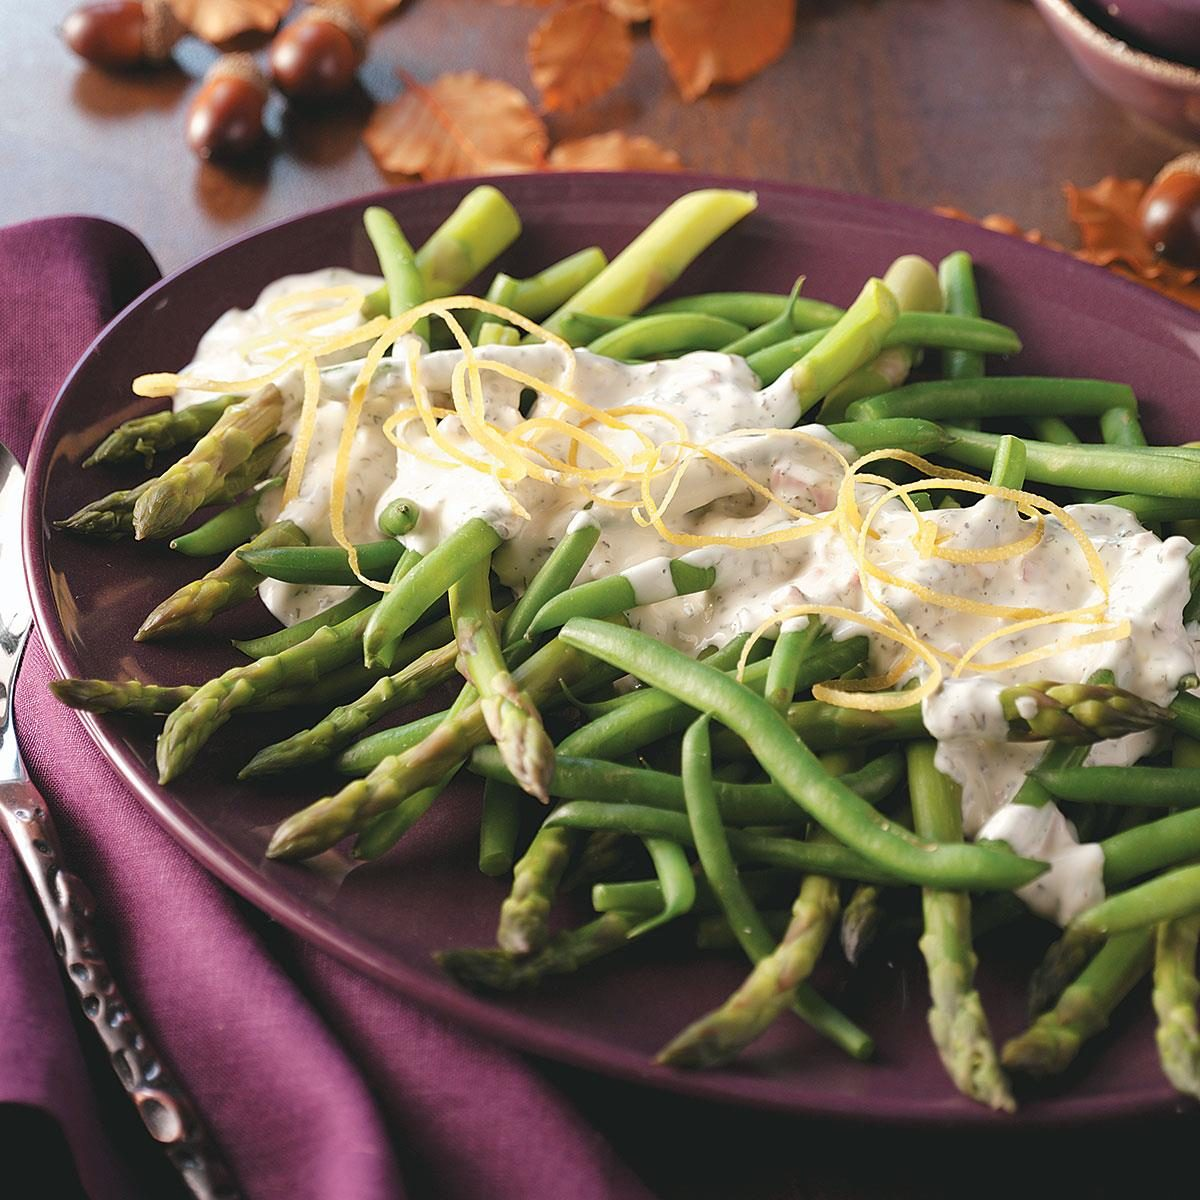 Asparagus And Green Beans With Tarragon Lemon Dip Recipe  Taste Of Home